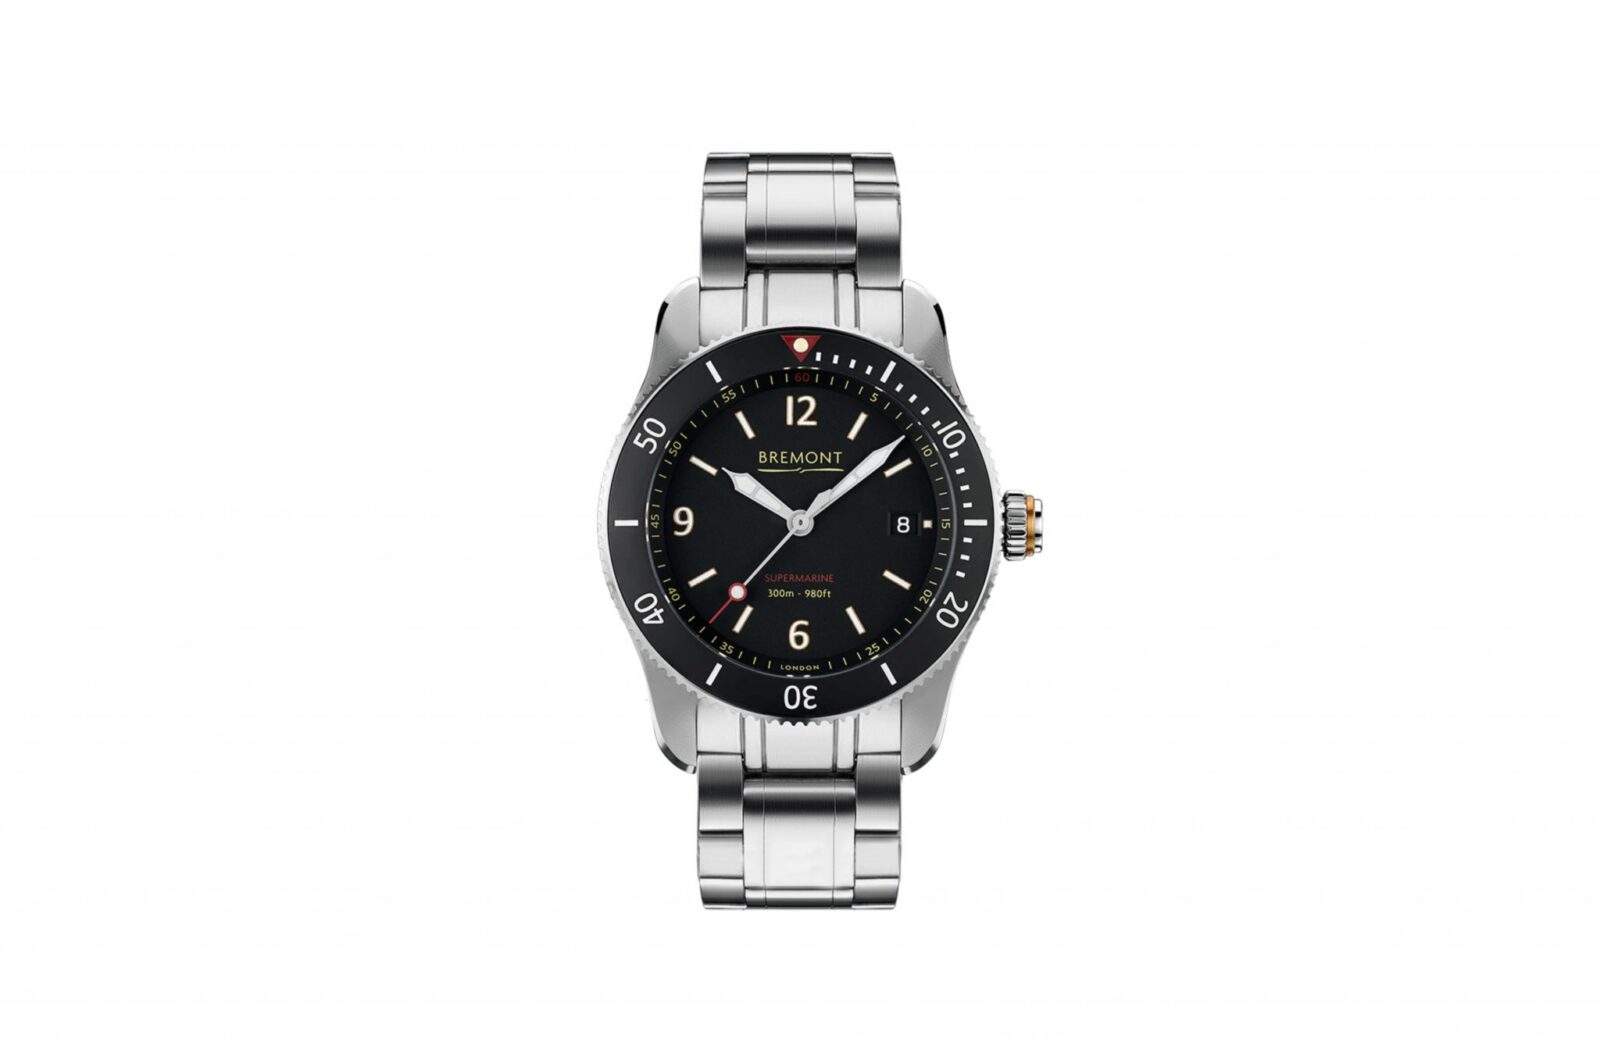 Bremont Supermarine Type 300 Wristwatch 1600x1047 - Bremont Supermarine Type 300 Wristwatch